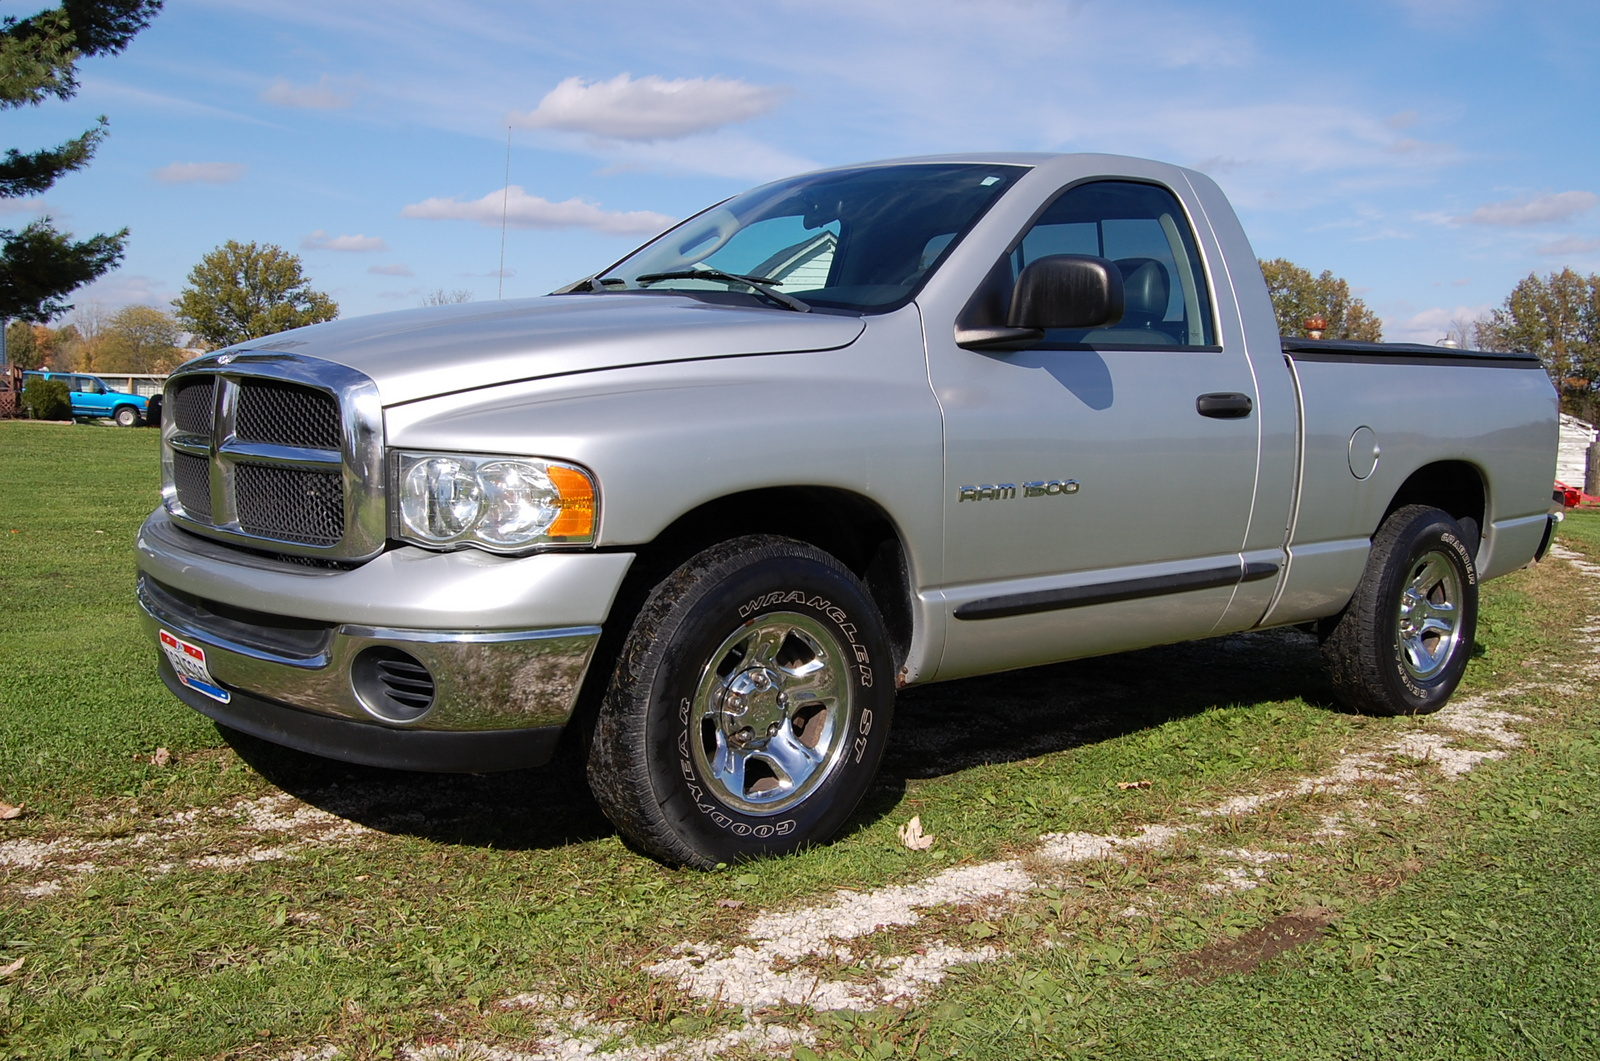 2005 dodge ram pickup 1500 exterior pictures cargurus. Black Bedroom Furniture Sets. Home Design Ideas